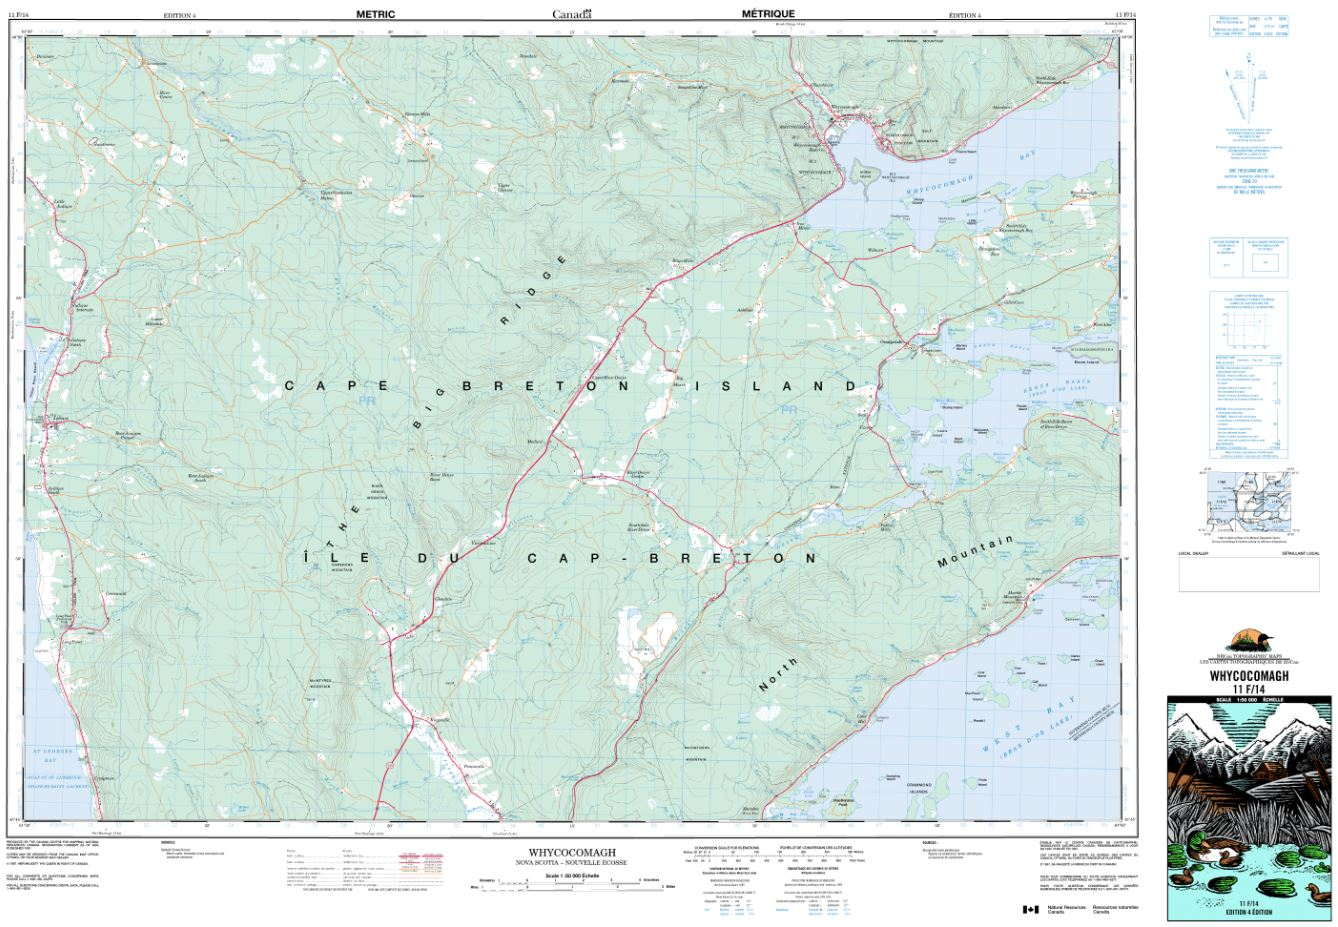 11F/14 Whycocomagh Topographic Map Nova Scotia Tyvek